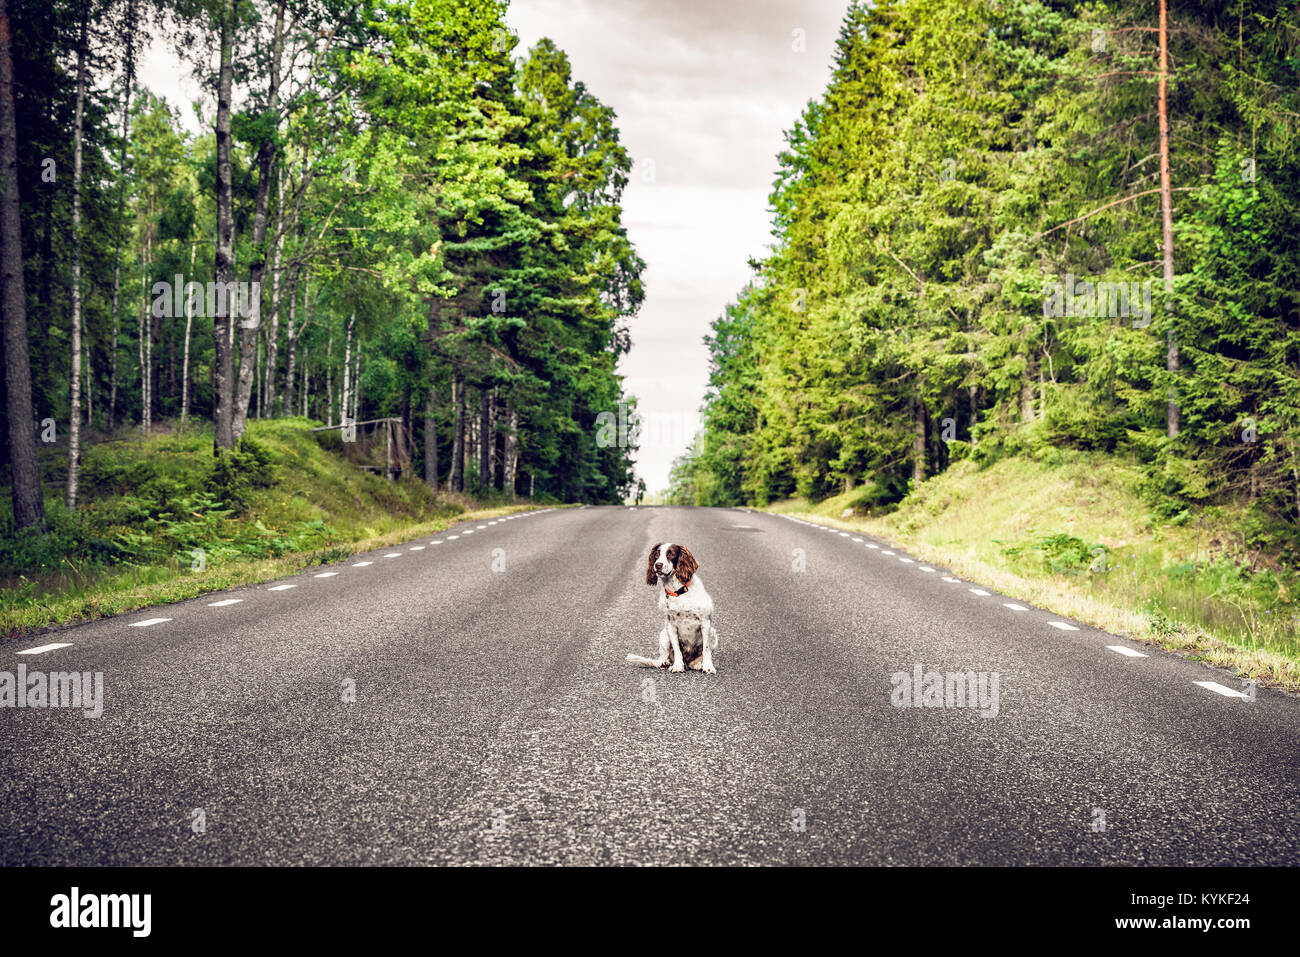 Dog sitting in the middle of the road in a forest highway surrounded by tall trees - Stock Image